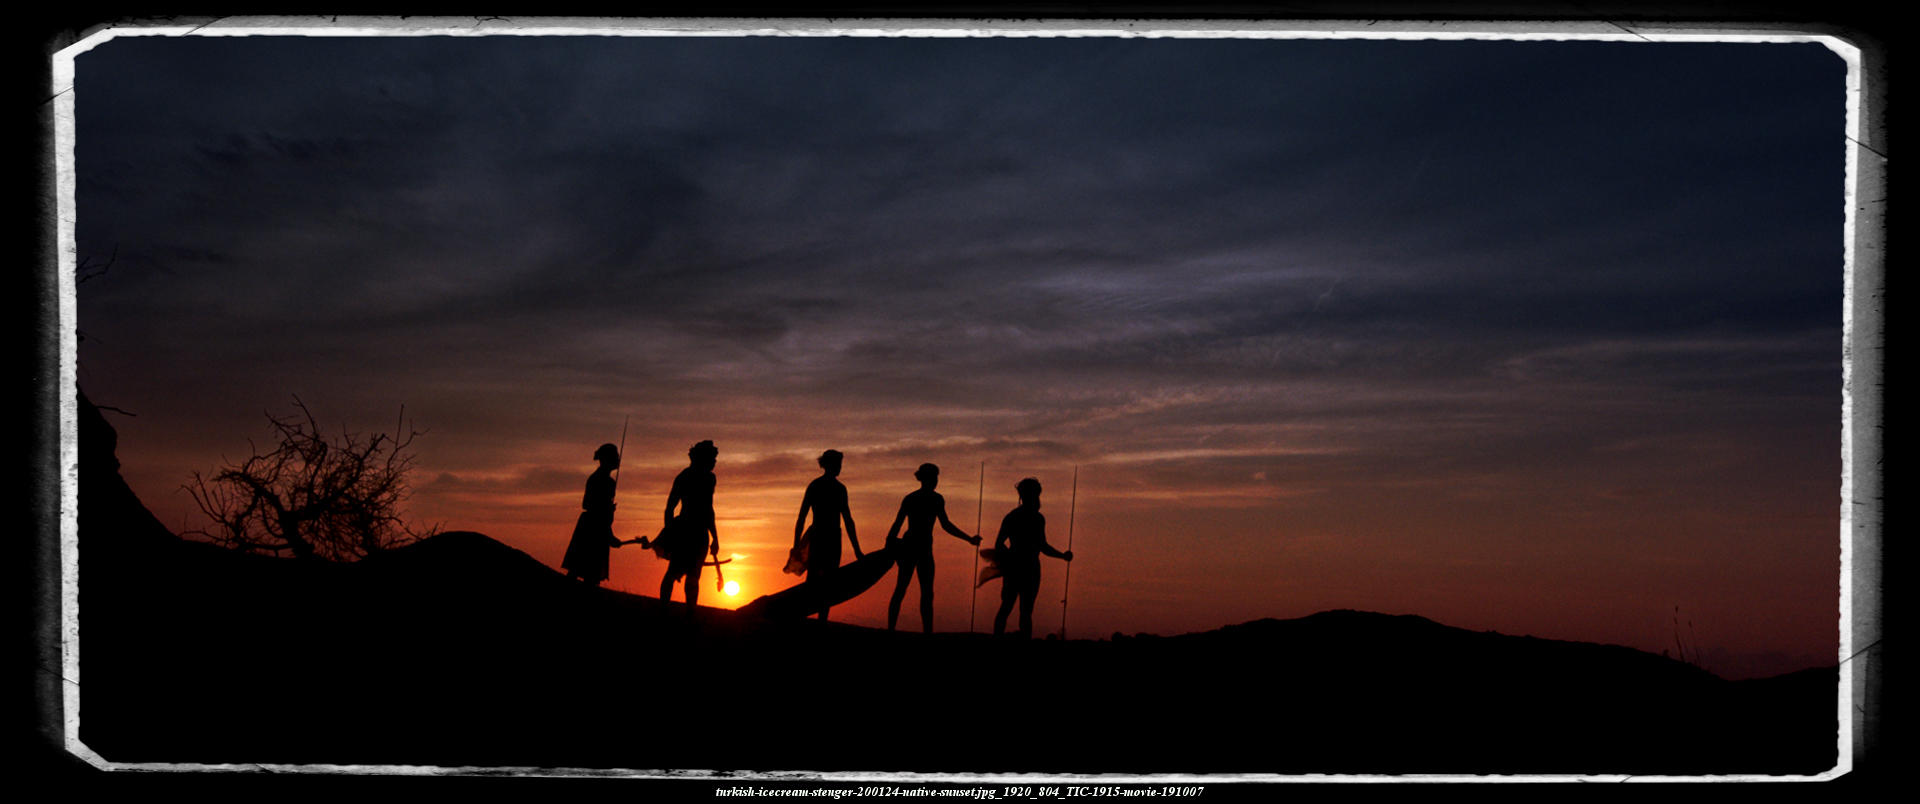 turkish-ICECREAM-silhouettes of a group of aborigines standing on a hill, facing the golden sunset